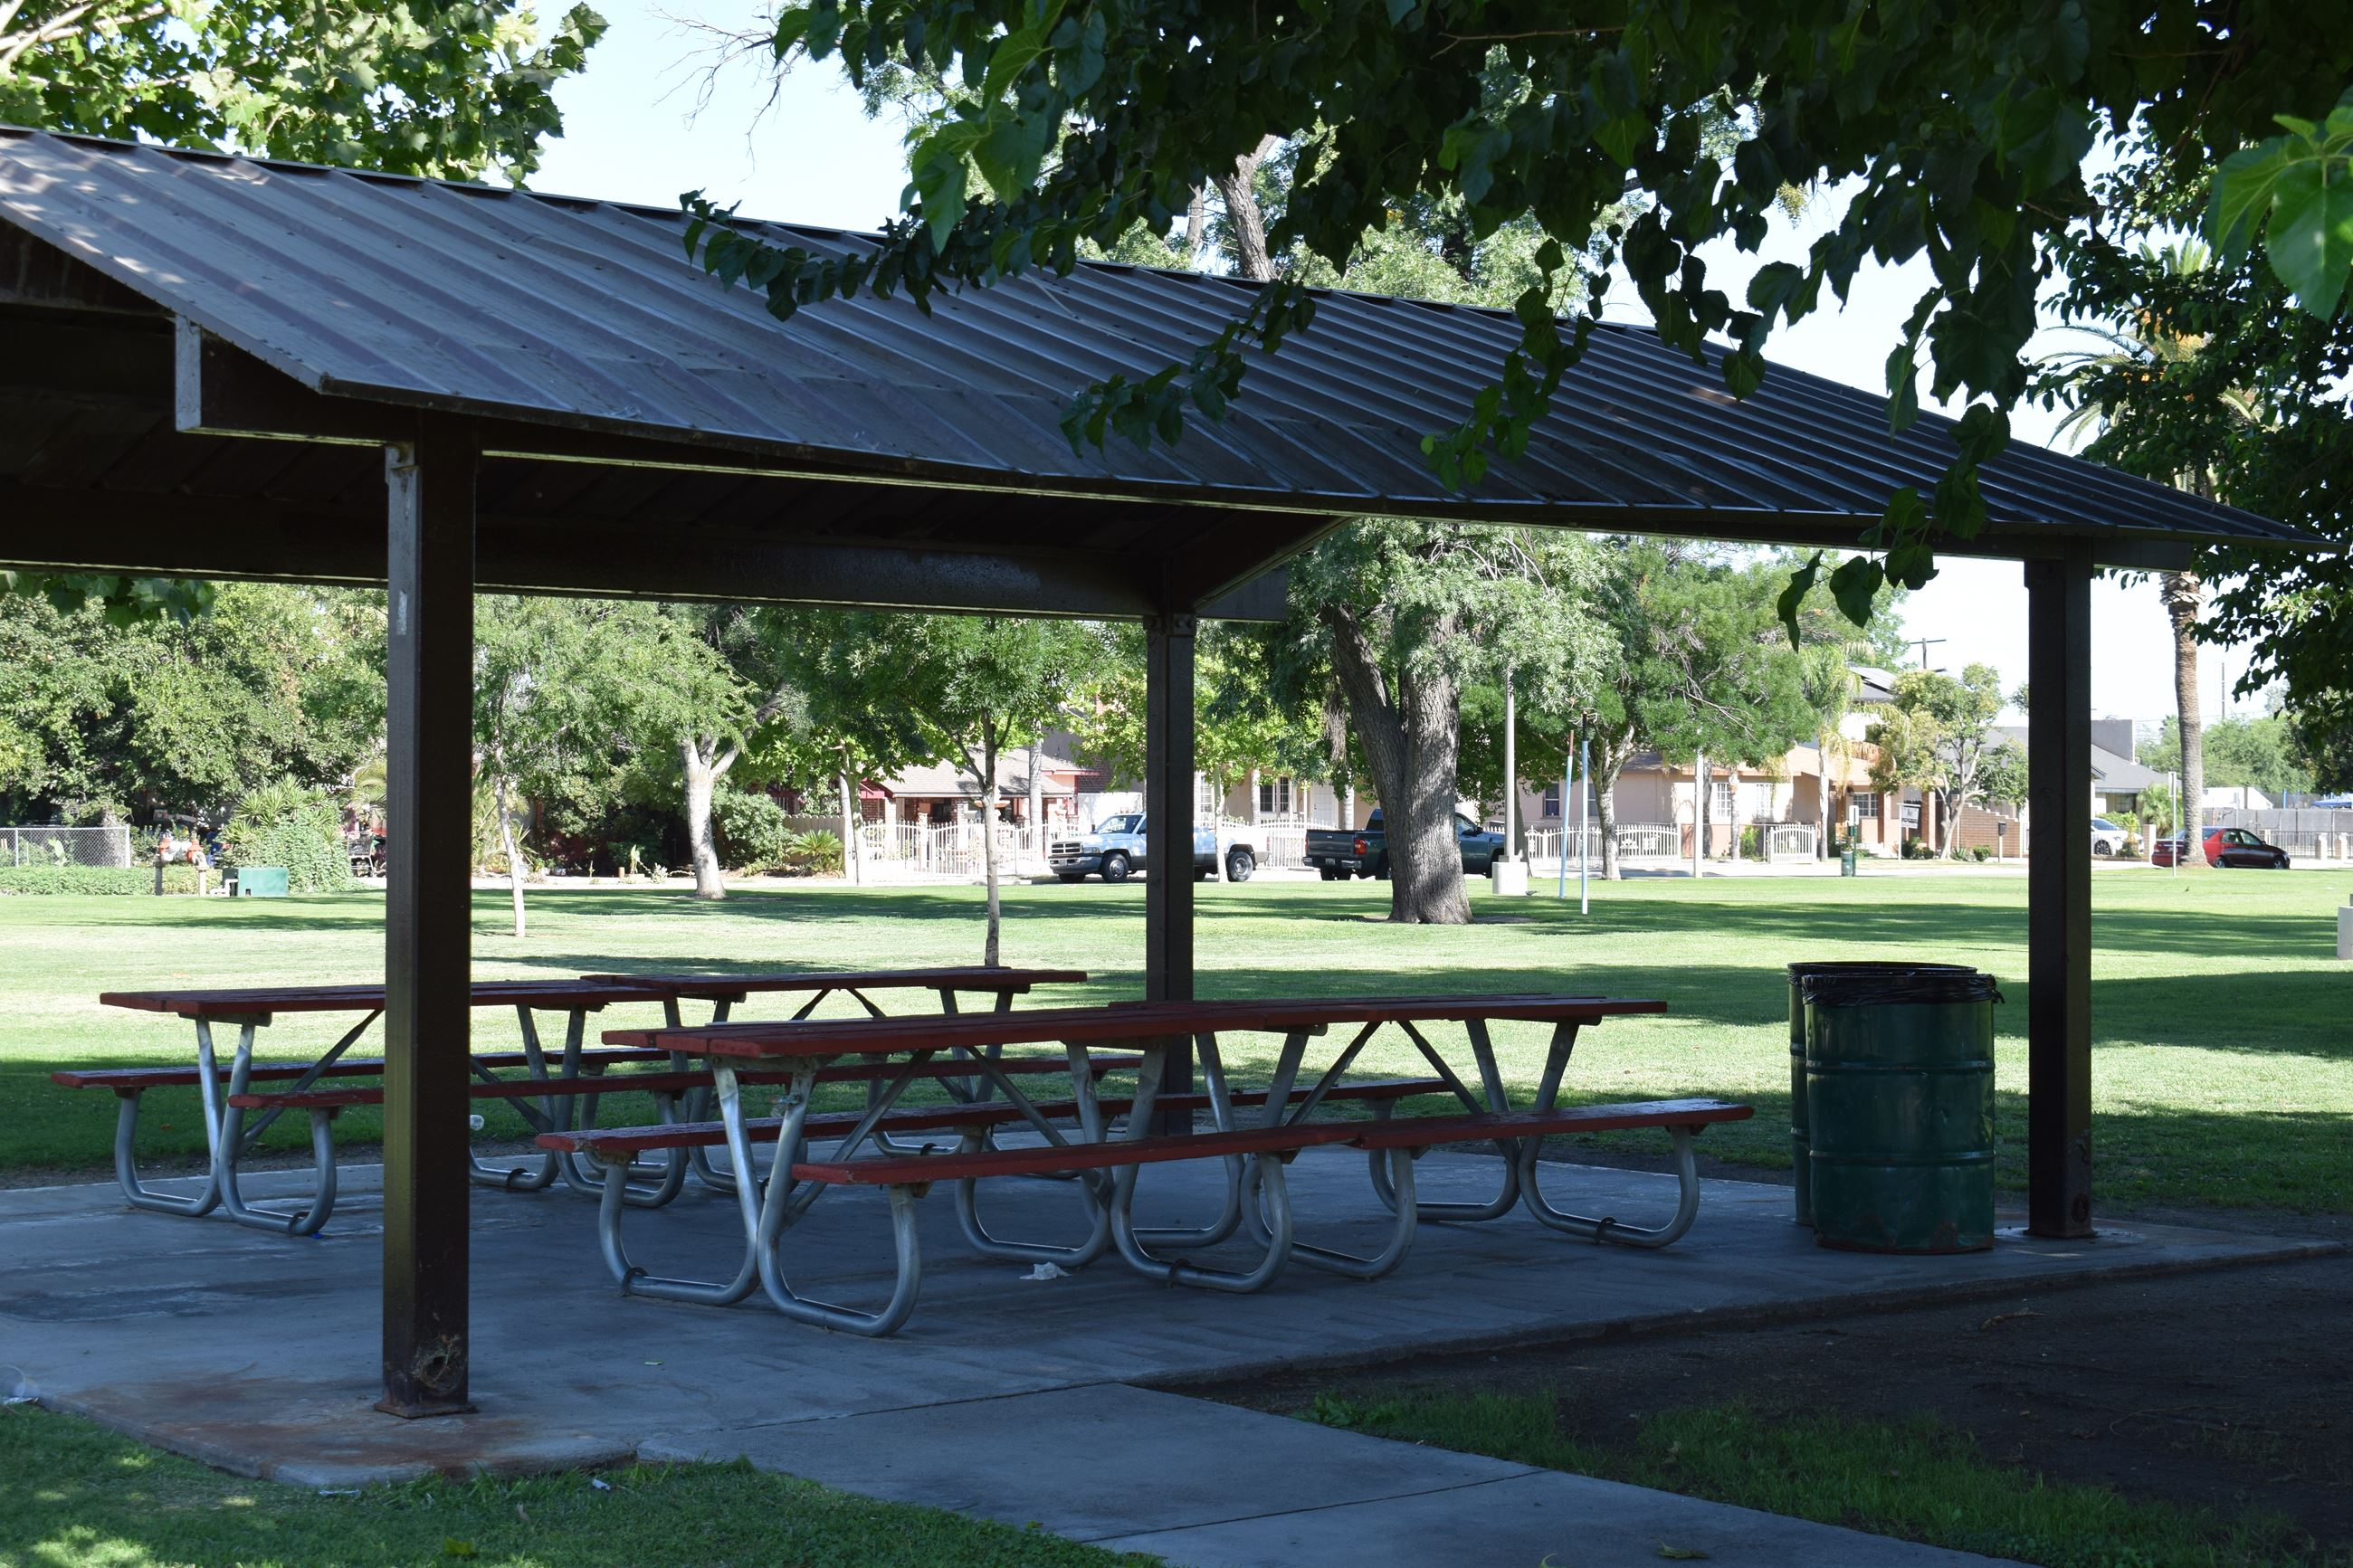 Cecil Park South Gazebo